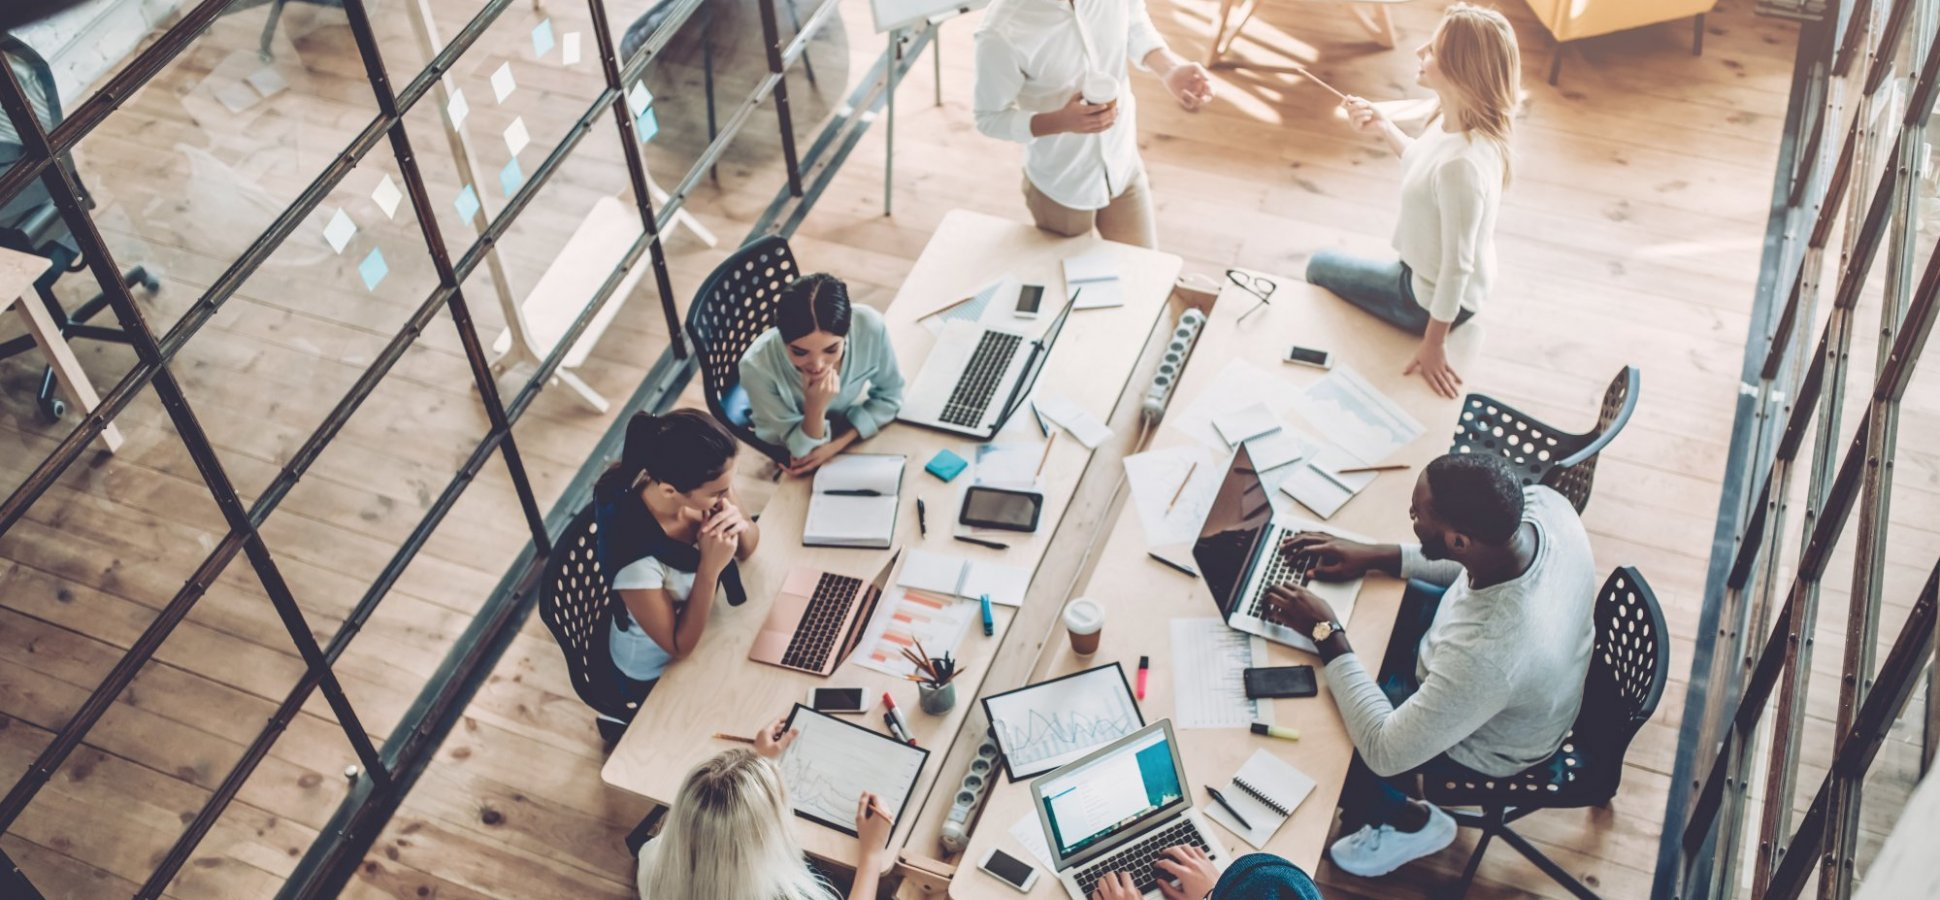 How to Build a Company Your Team Will Never Want to Leave